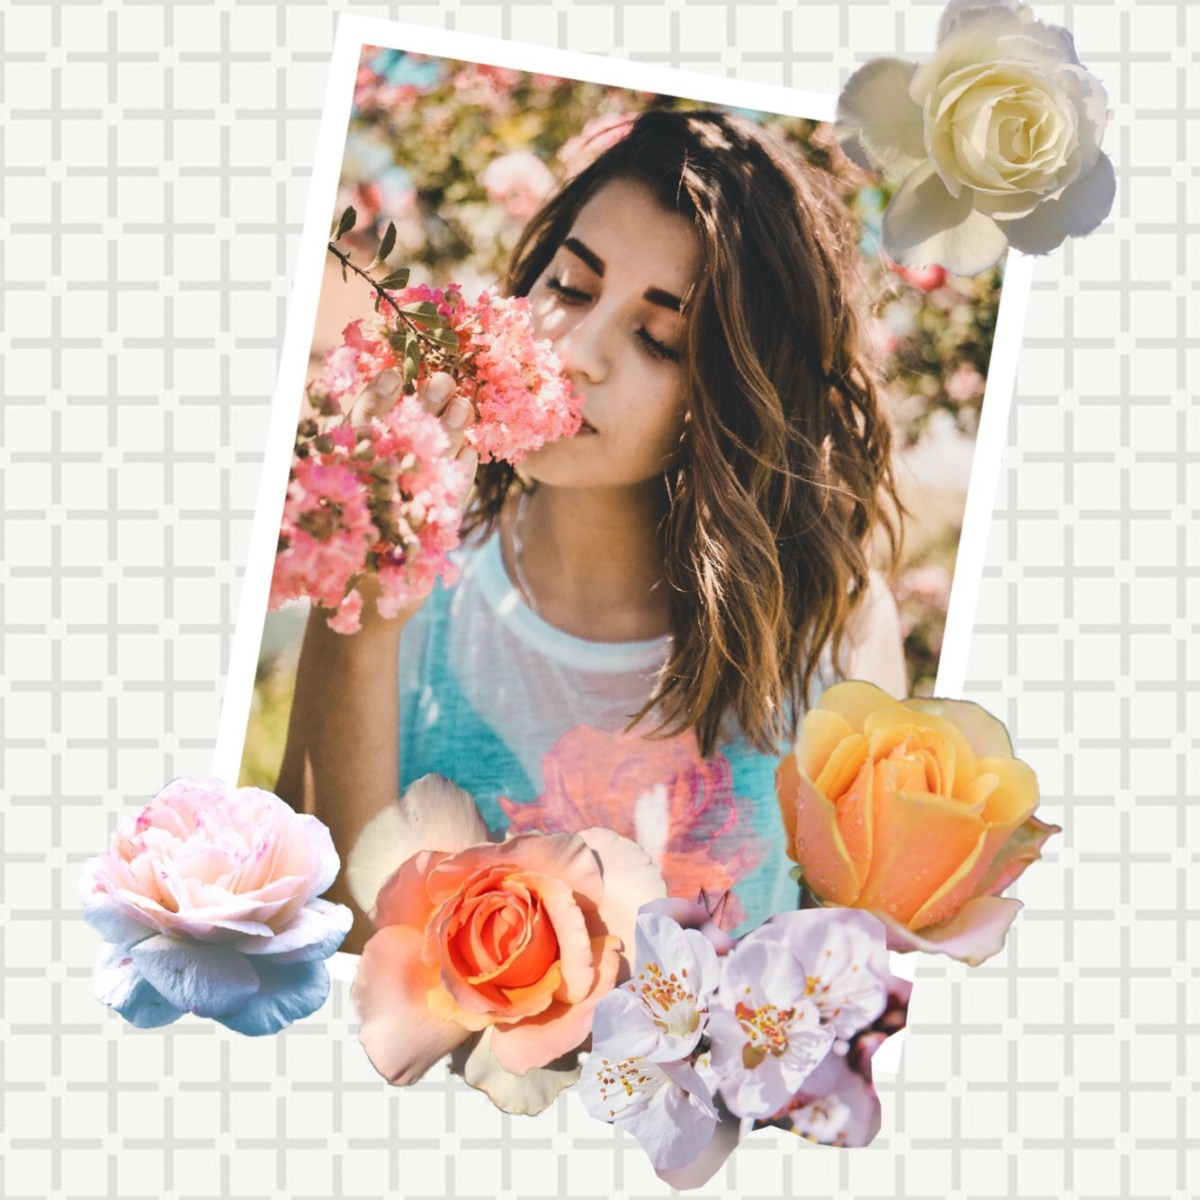 How To Use Photos With Flower Imagery In Collages Piccollage